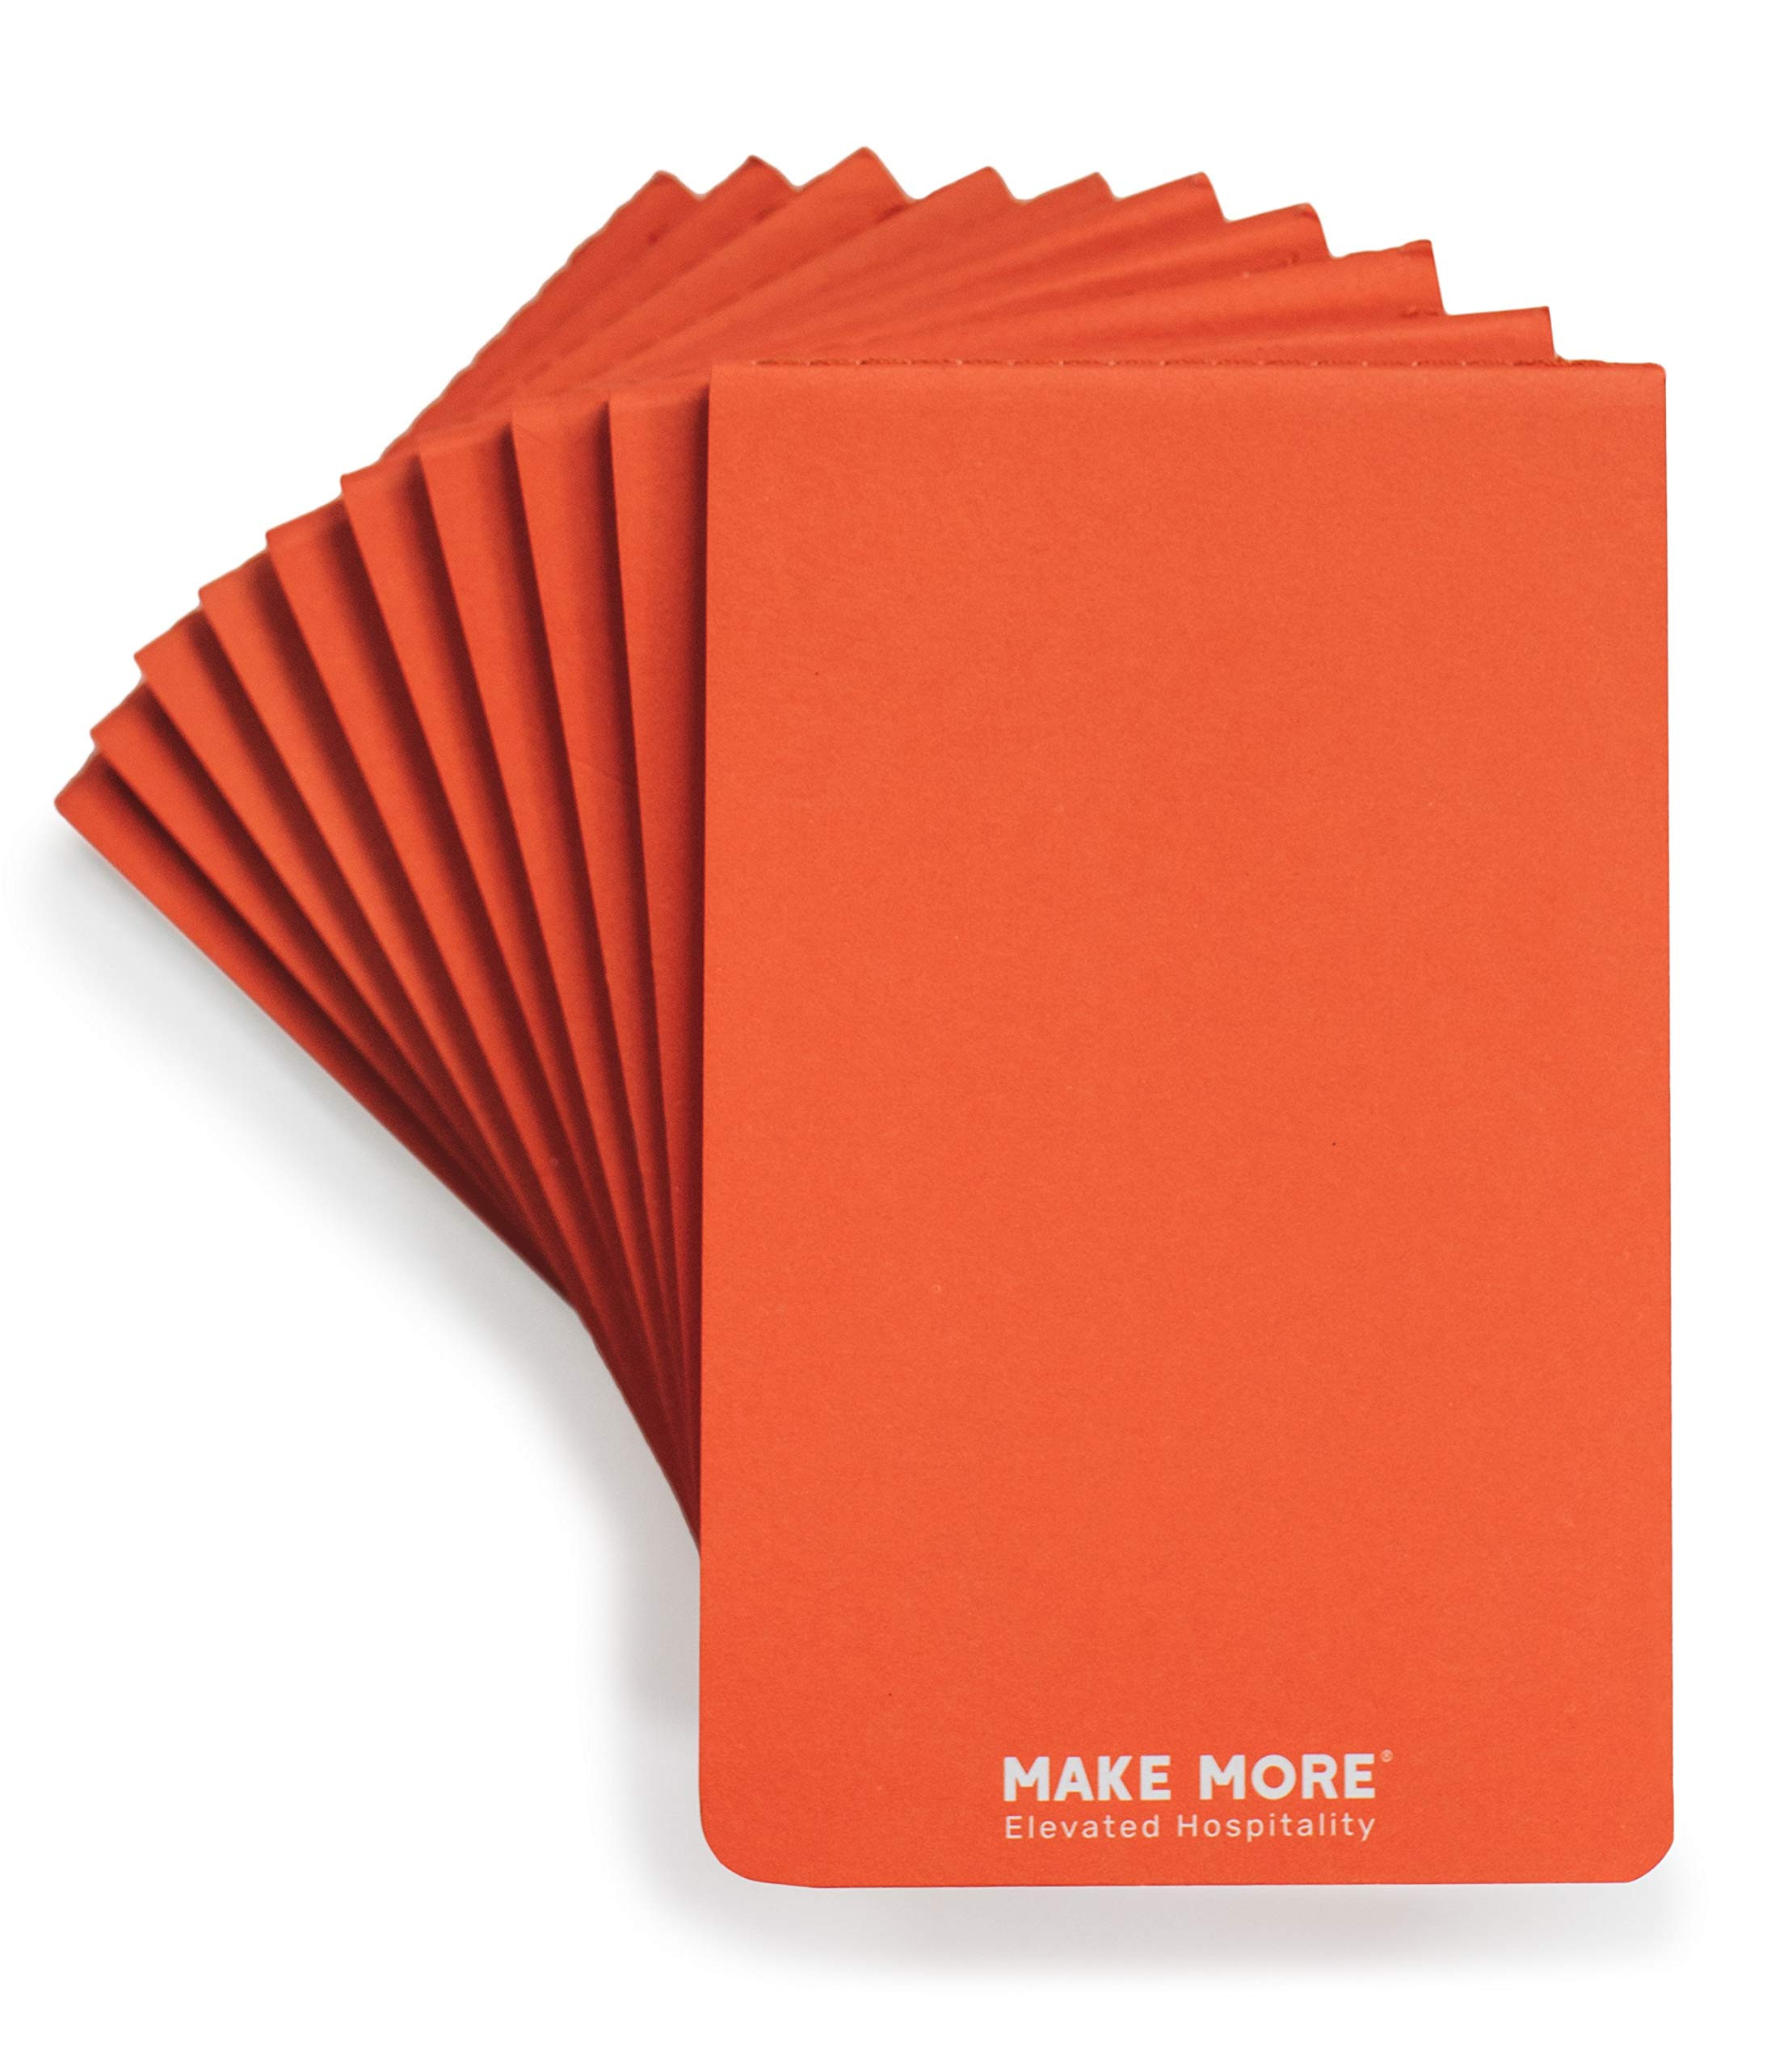 Server Note pads for restaurant Waitress & Waiter, Perfect for optimized and confident guests order taking, 40 lined double sided detachable sheets, Size 5.5 by 3.5, Pack of 10, LAUNCH PRICING